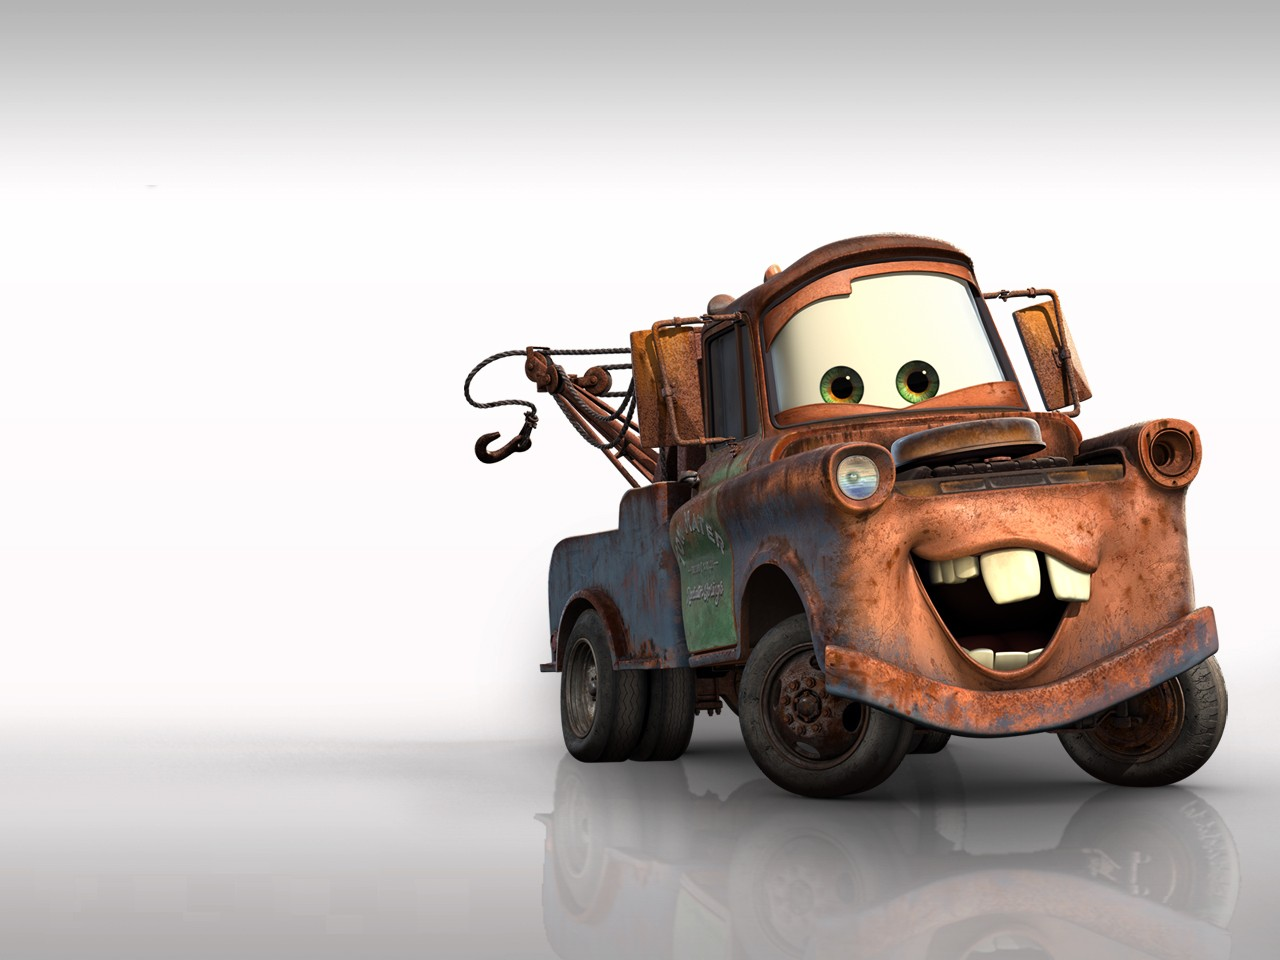 Film Cars - Mater || Top Wallpapers Download .blogspot.com